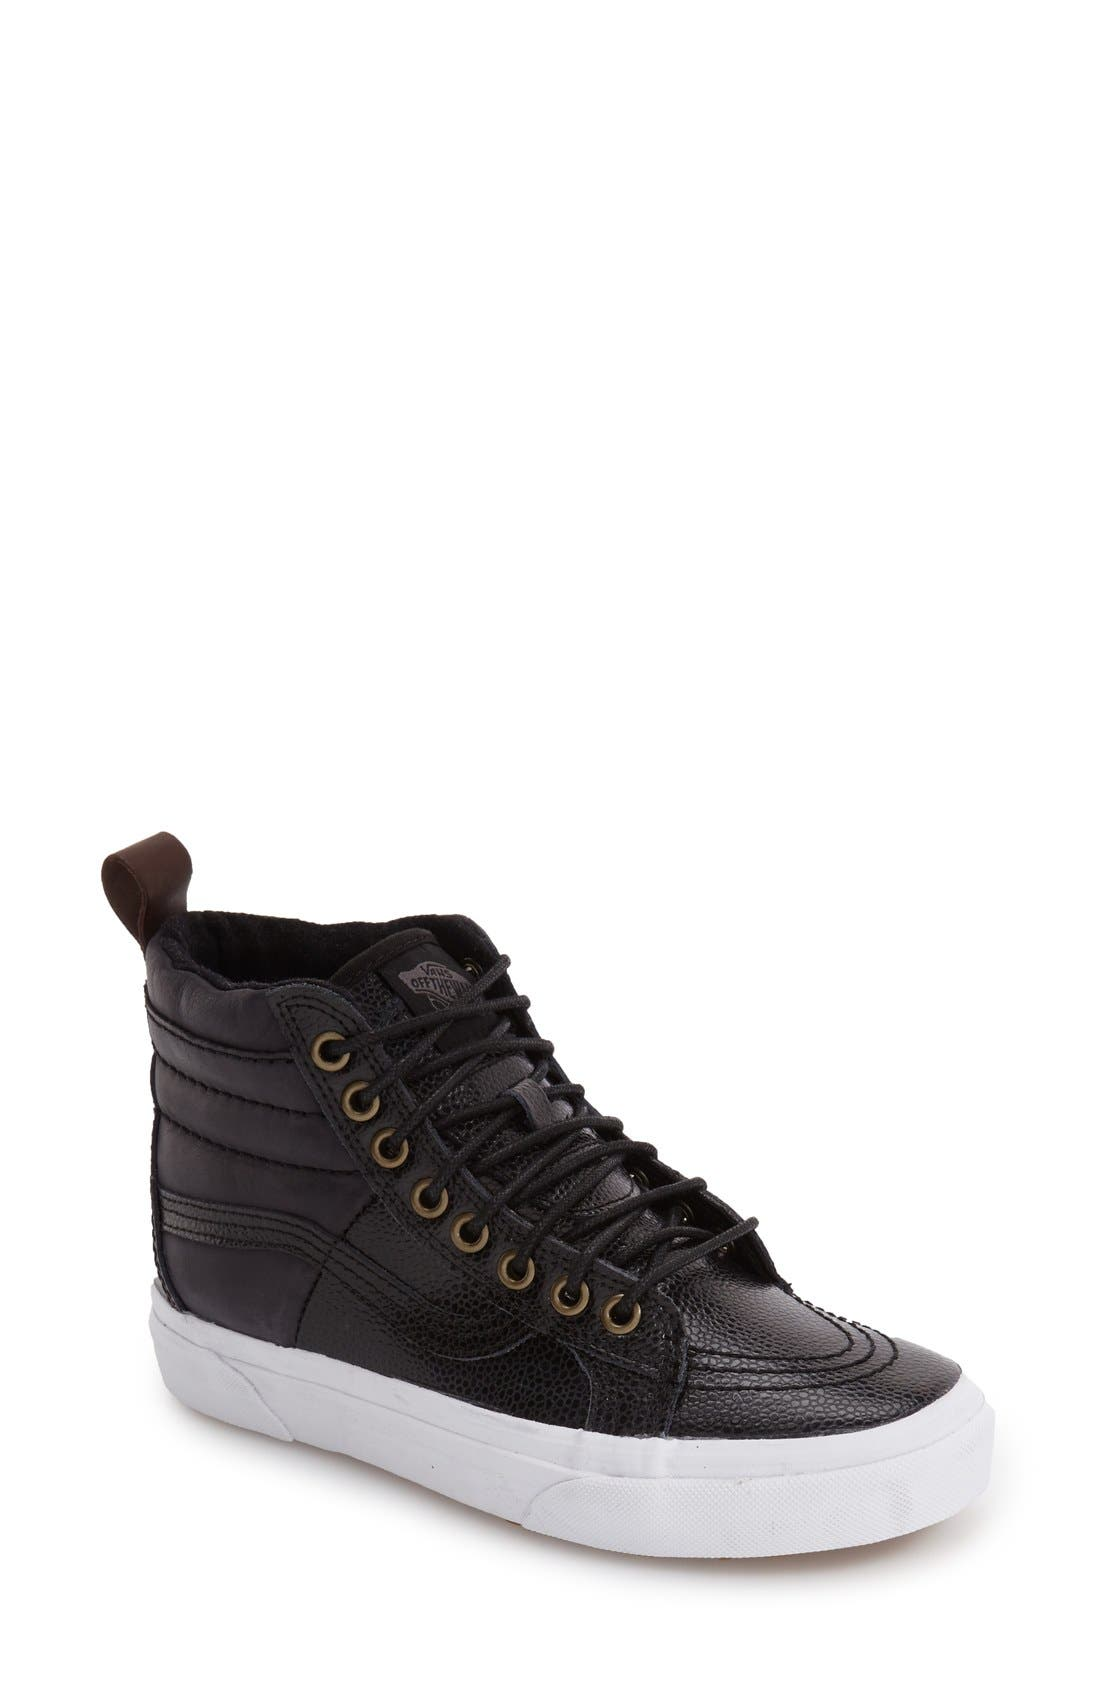 Alternate Image 1 Selected - Vans 'Hana Beaman - Sk8-Hi 46 MTE' Water Resistant High Top Sneaker (Women)